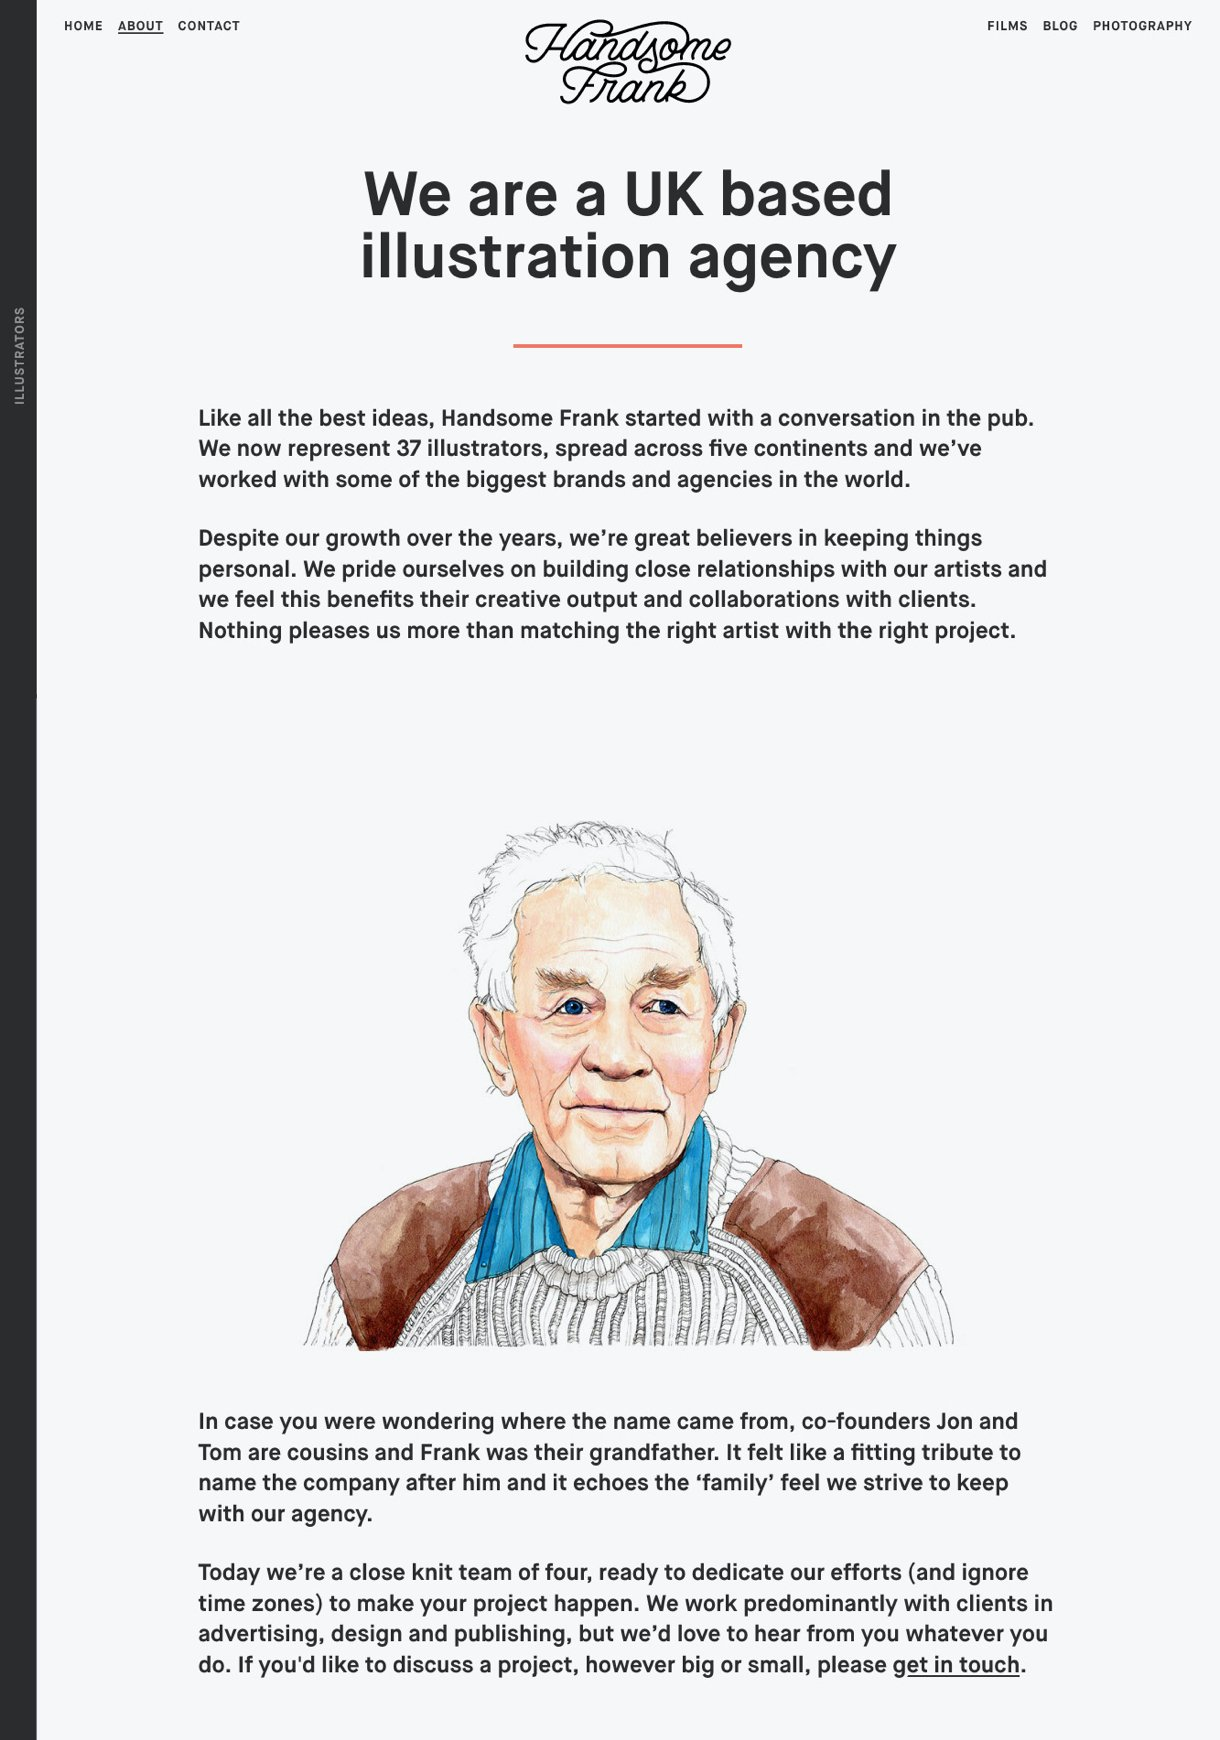 Handsome Frank agency About page white background portrait illustration